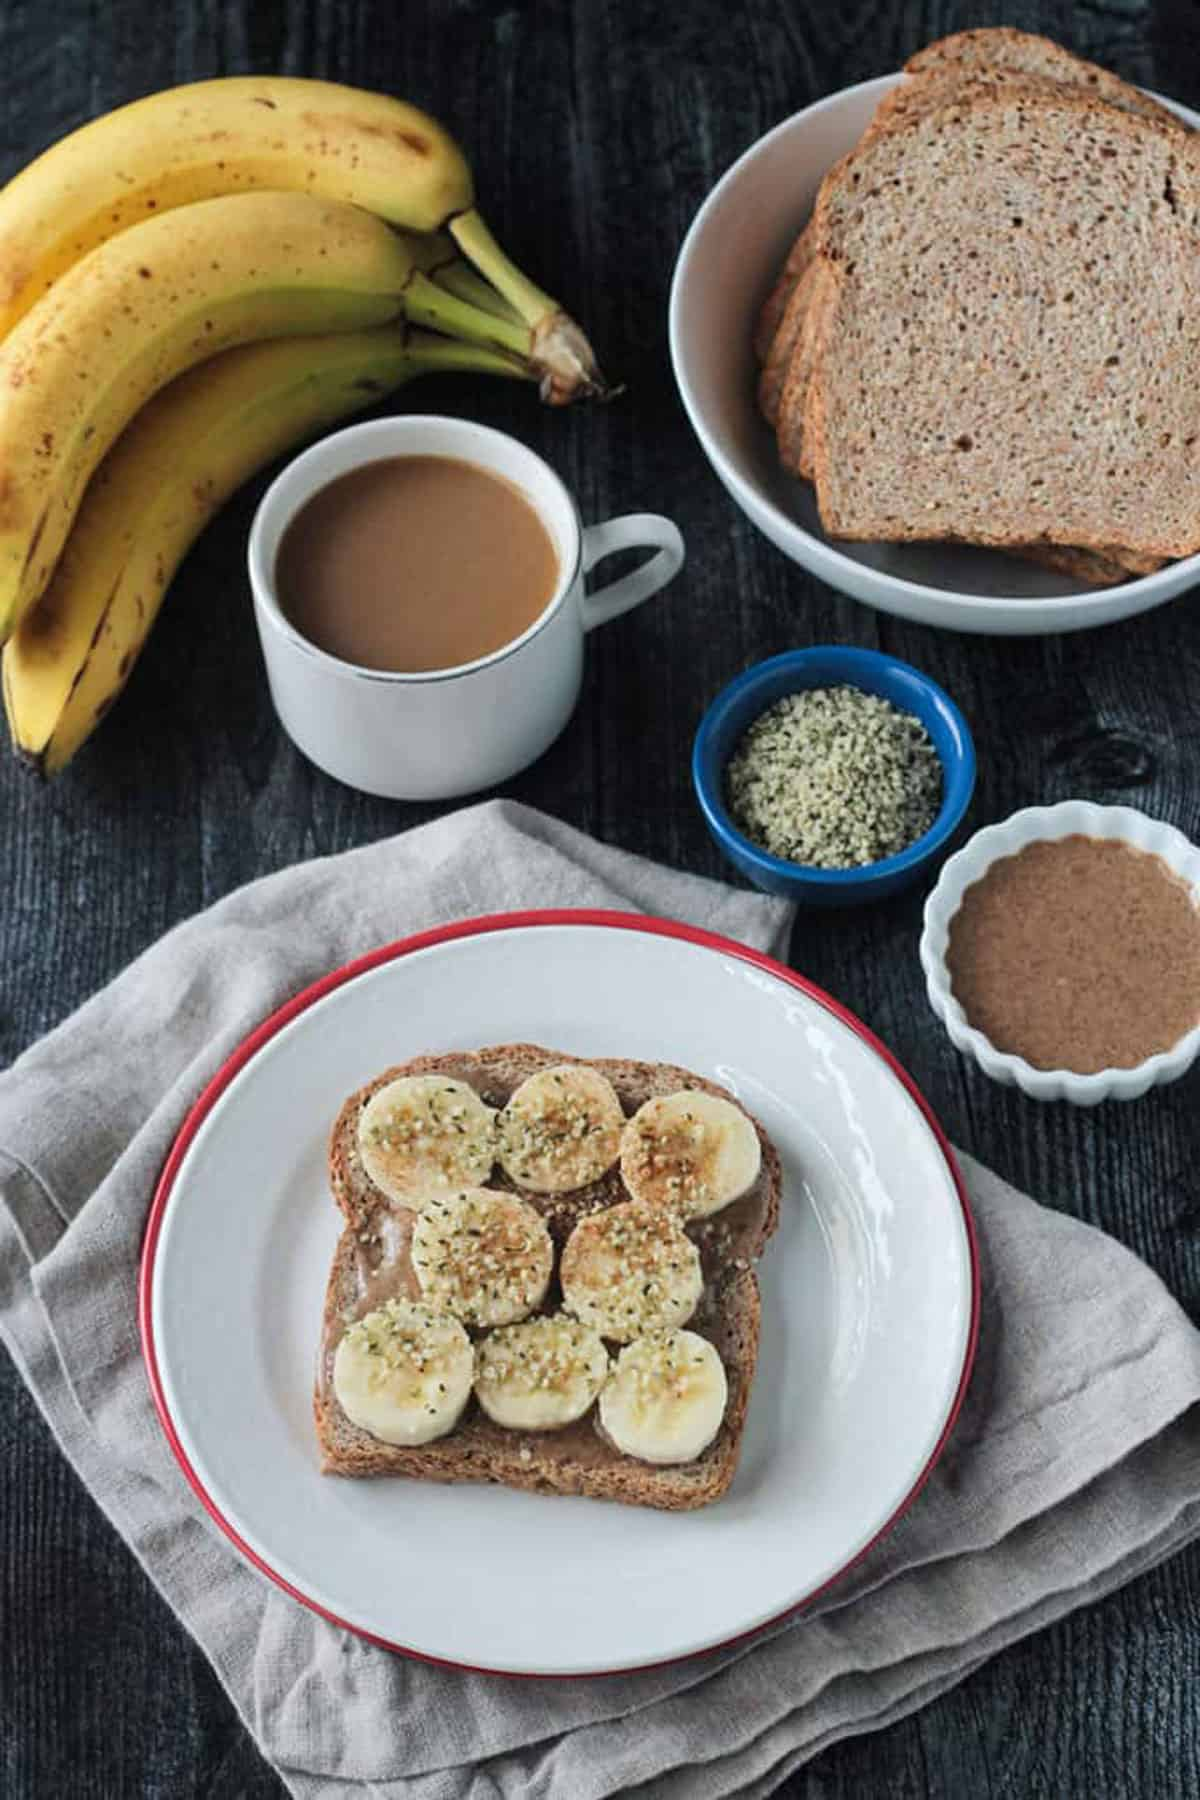 One slice of toast with nut butter, sliced bananas, and hemp seeds on a plate.